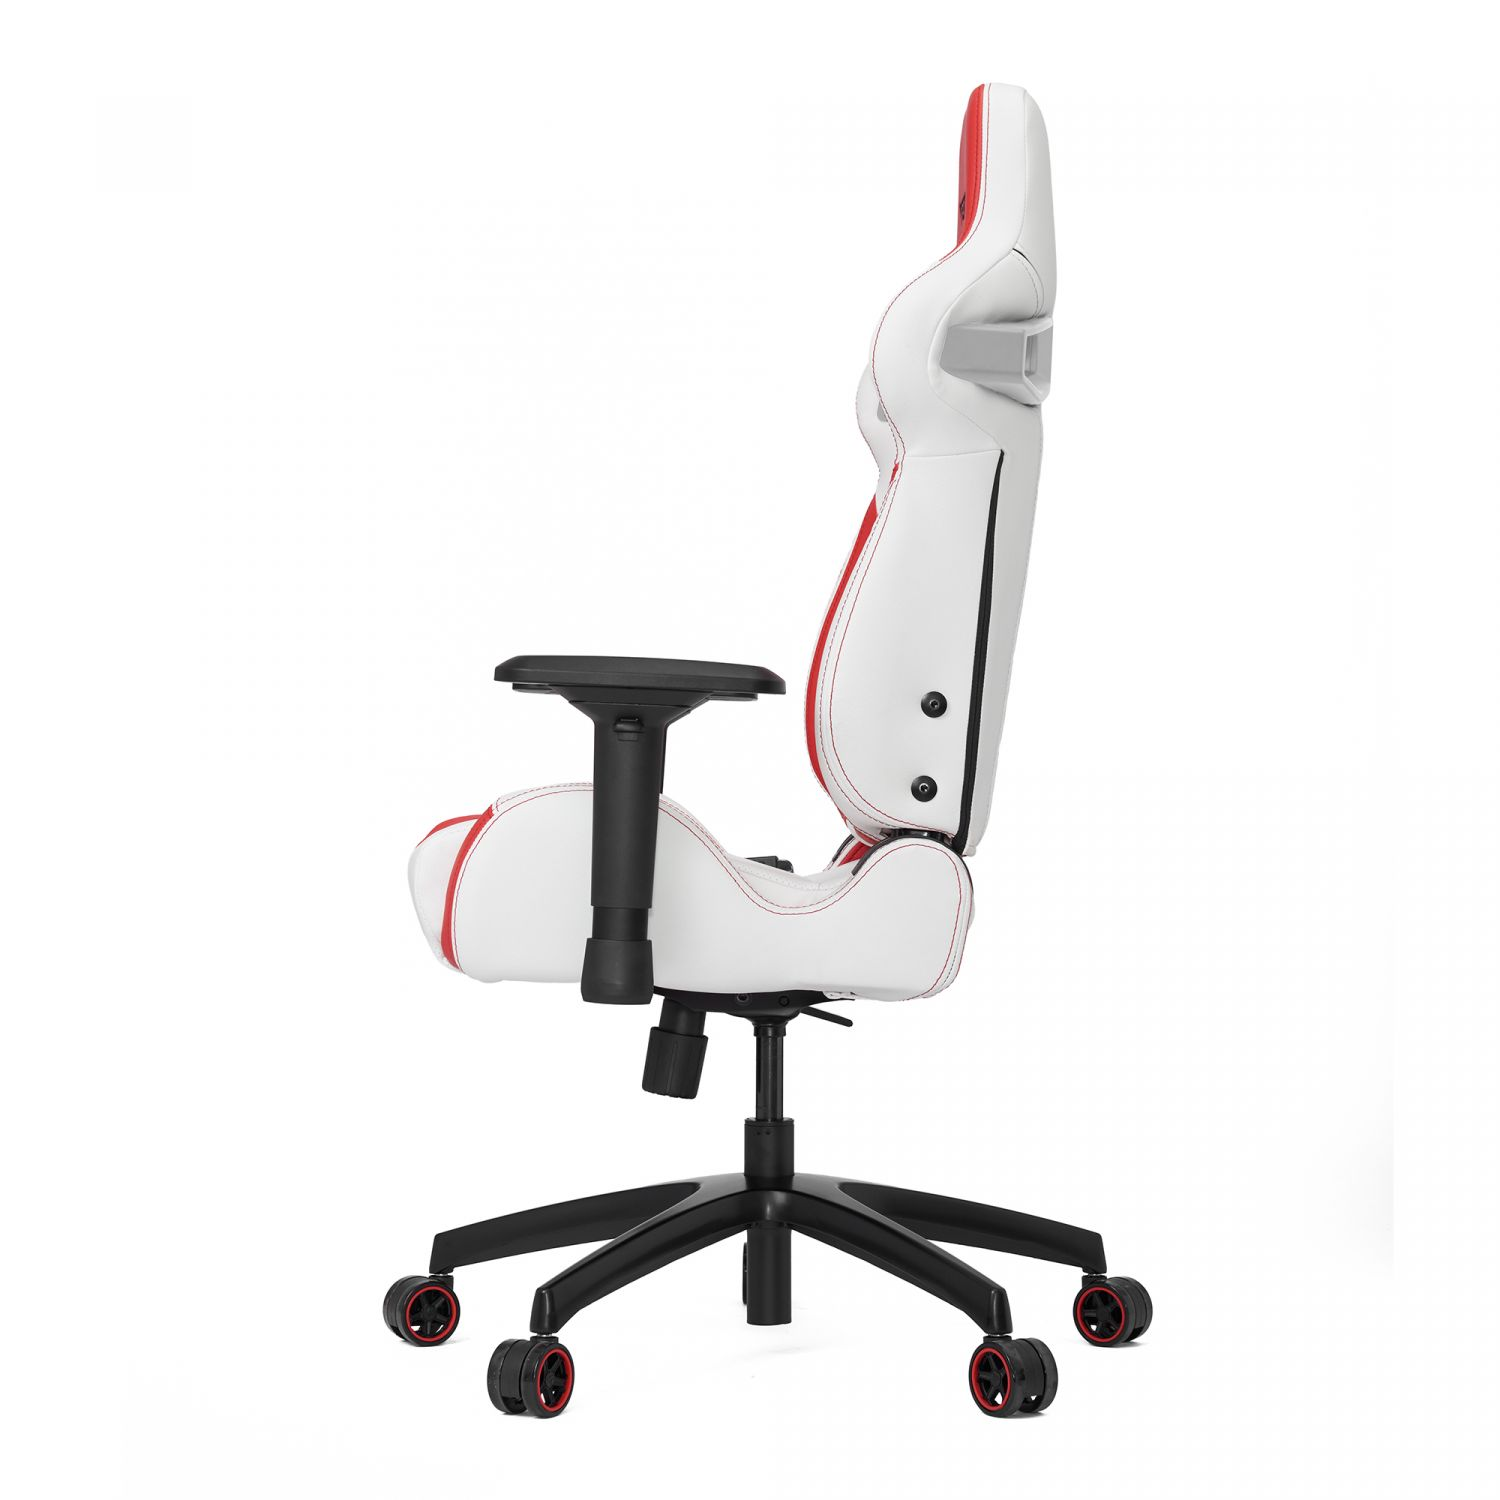 Vertagear Sl4000 Gaming Chair Whitered Edition Nordic Game Supply